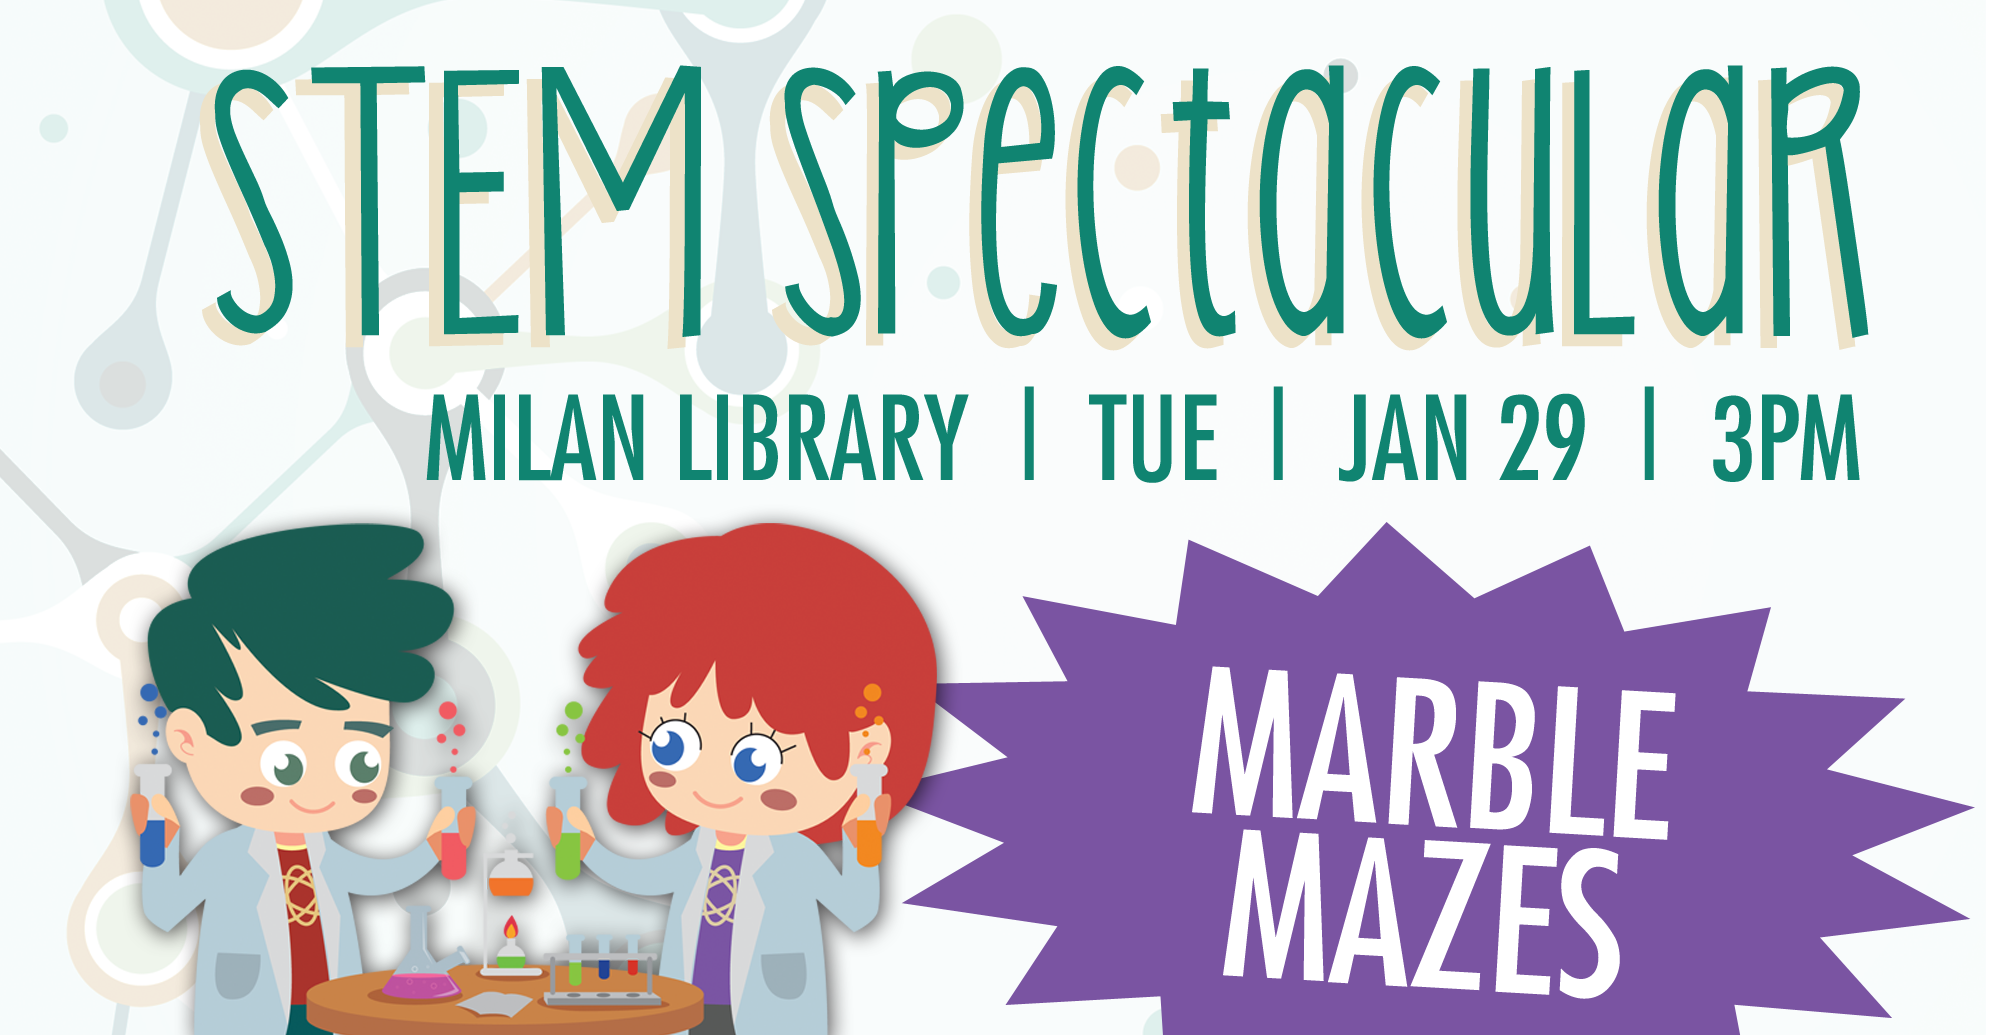 2019-01-CHILDRENS-Milan-Stem-Spectacular-Slide